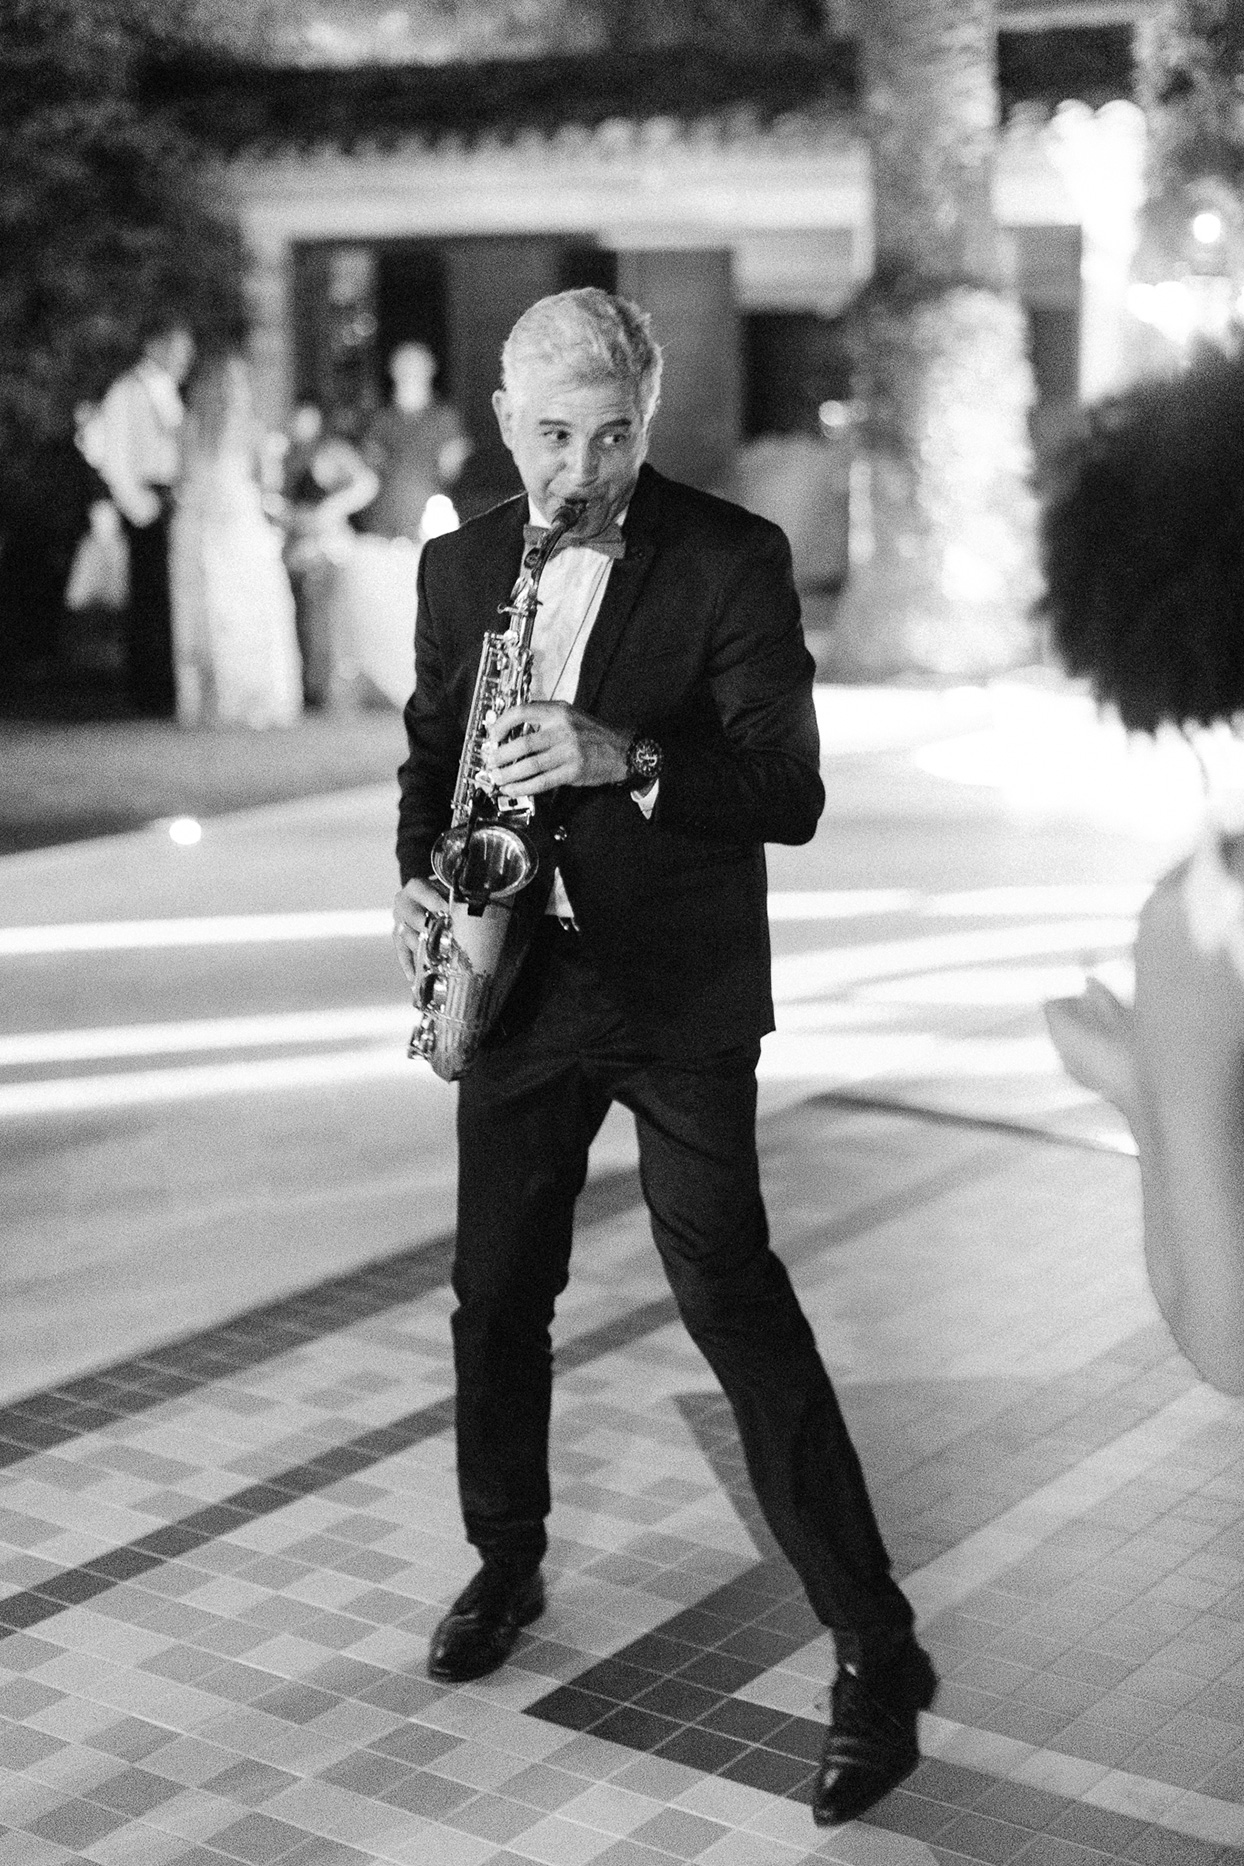 patricia ralph wedding saxophone player